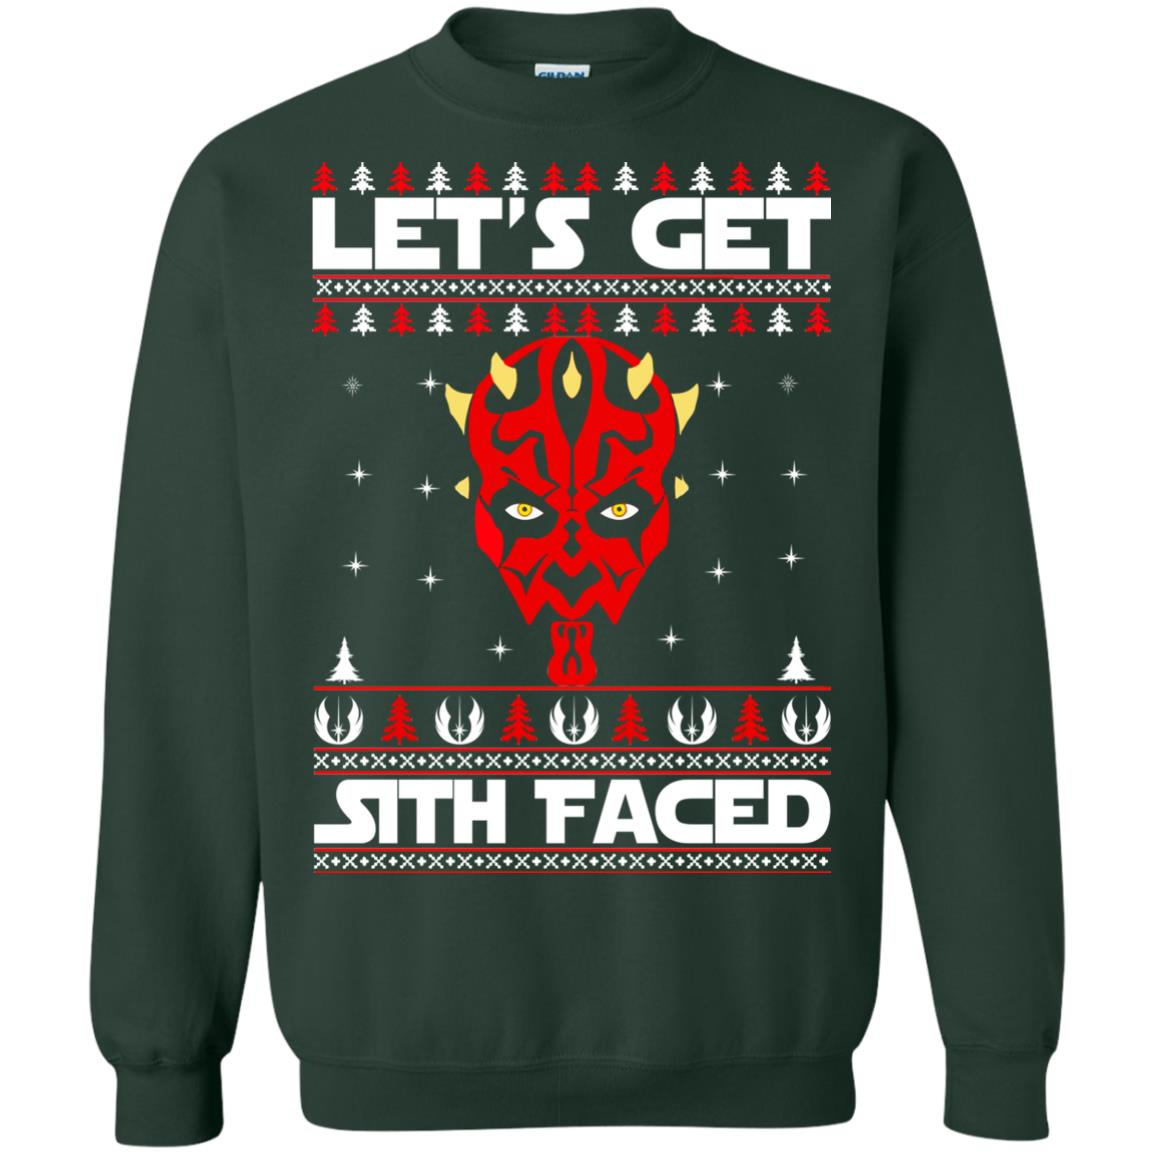 image 1755 - Darth Maul Let's Get Sith Faced Christmas Sweater